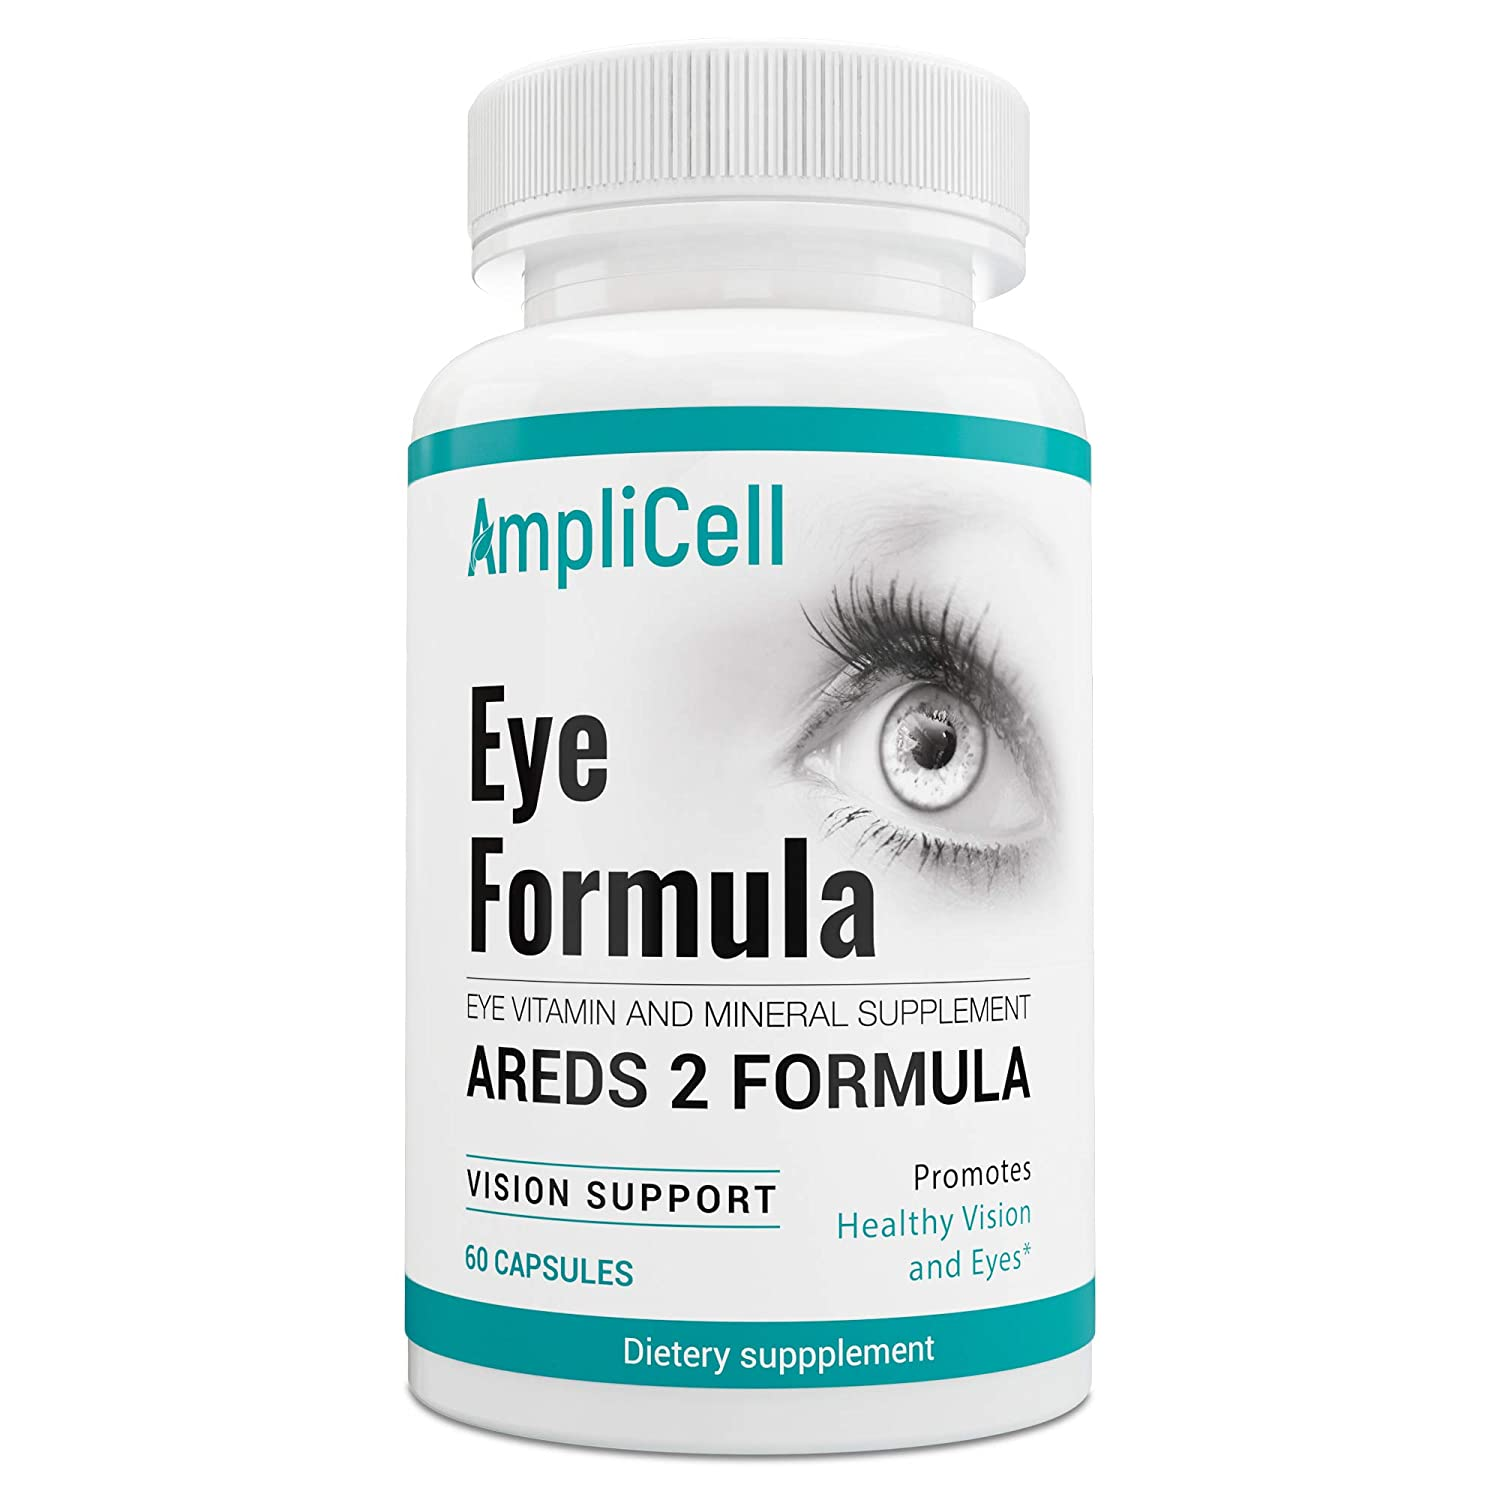 AREDS 2 Eye Vitamins with Lutein and Zeaxanthin Supplements – FDA Certified – Potent Pure AMD Eye Health Supplements Support Comfort, Clarity, Color Perception, Night Vision, and Depth Perception